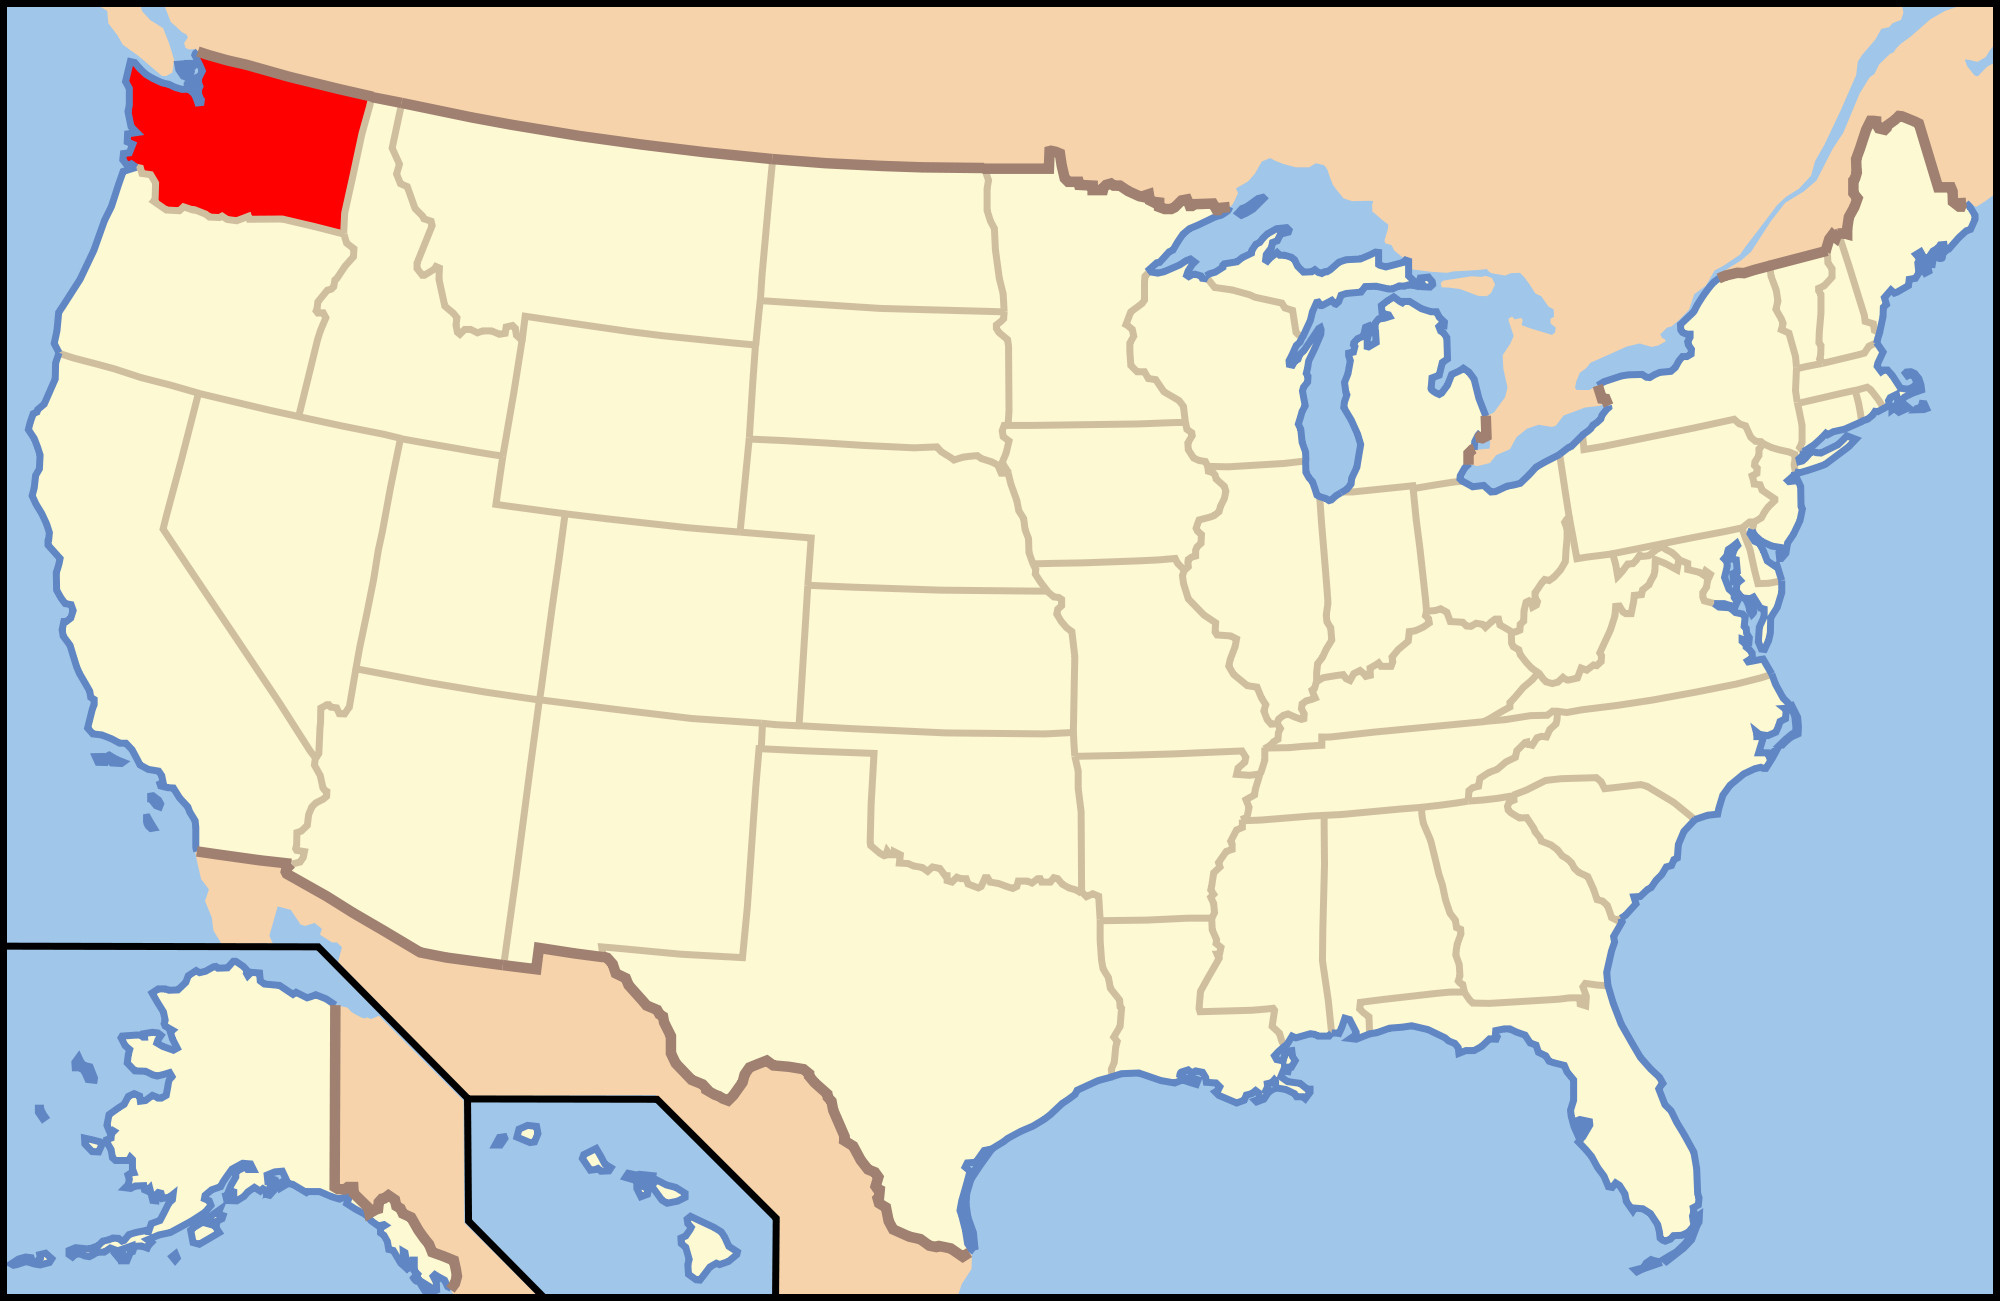 Where Is Lincoln California On The Map Outline Pierce County - Where Is Lincoln California On The Map